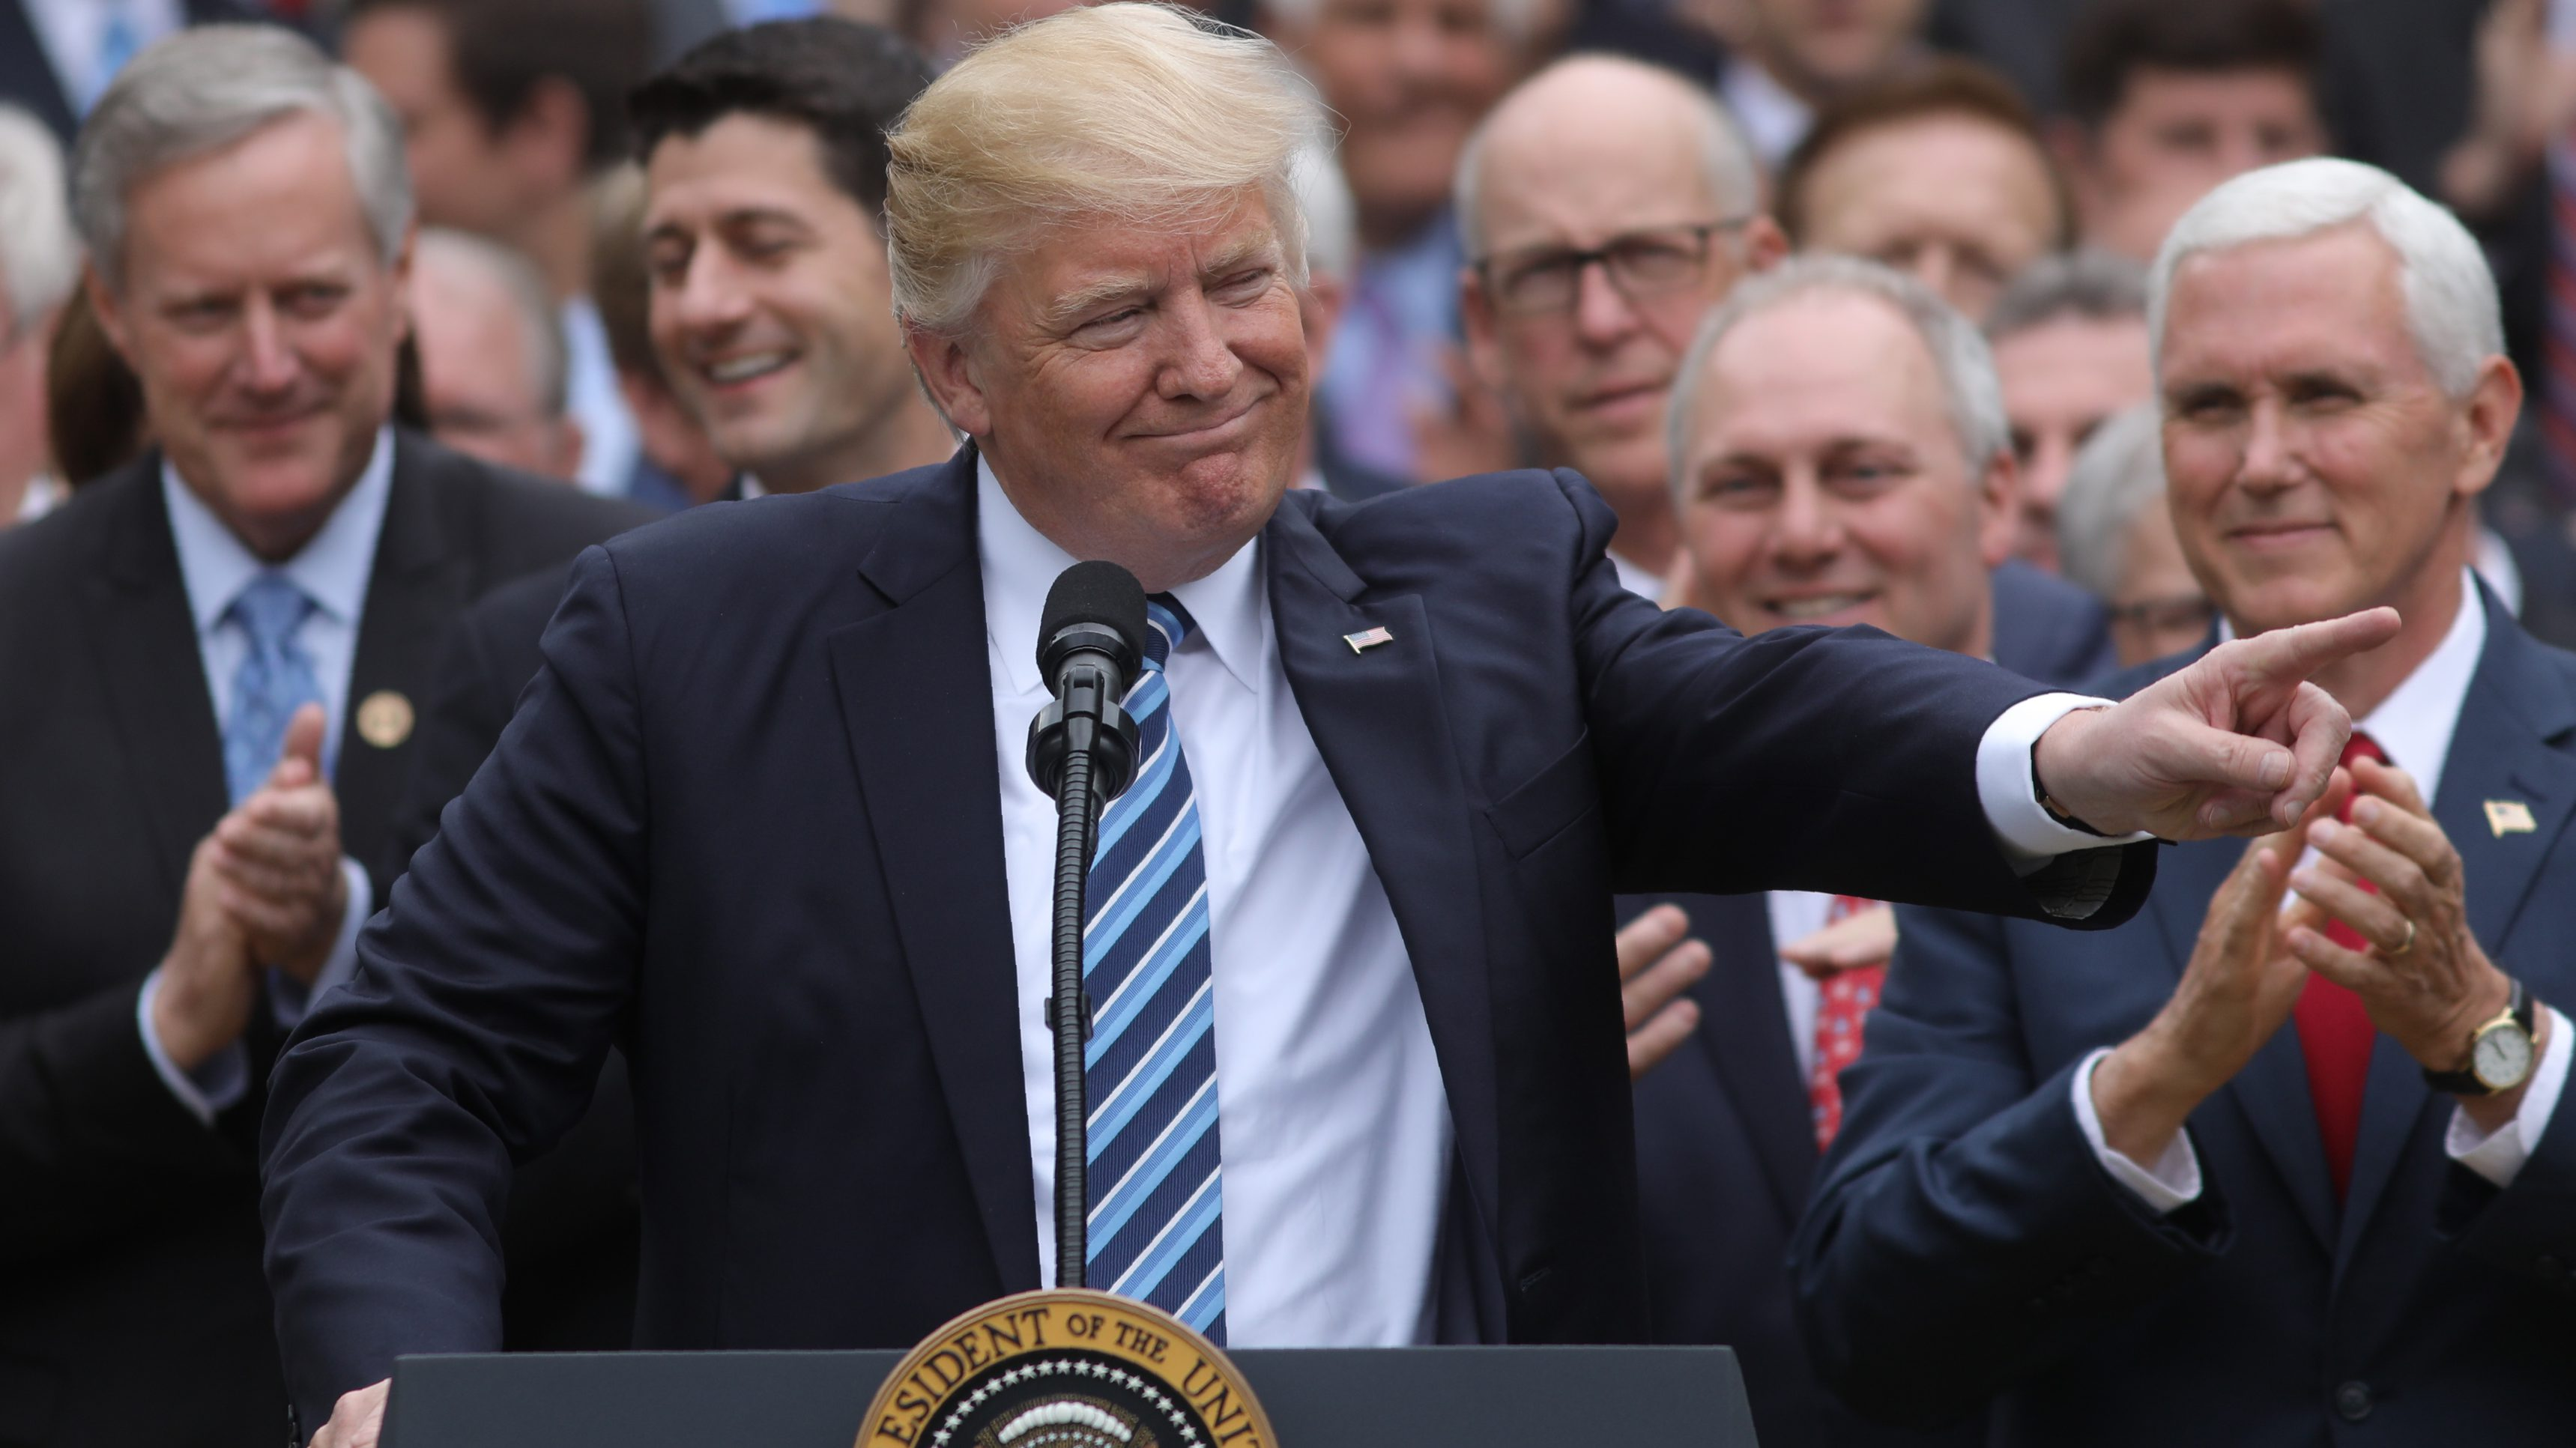 U.S. President Donald Trump (C) gathers with Vice President Mike Pence (R) and Congressional Republicans in the Rose Garden of the White House after the House of Representatives approved the American Healthcare Act, to repeal major parts of Obamacare and replace it with the Republican healthcare plan, in Washington, U.S., May 4, 2017. REUTERS/Carlos Barria - RTS157HN